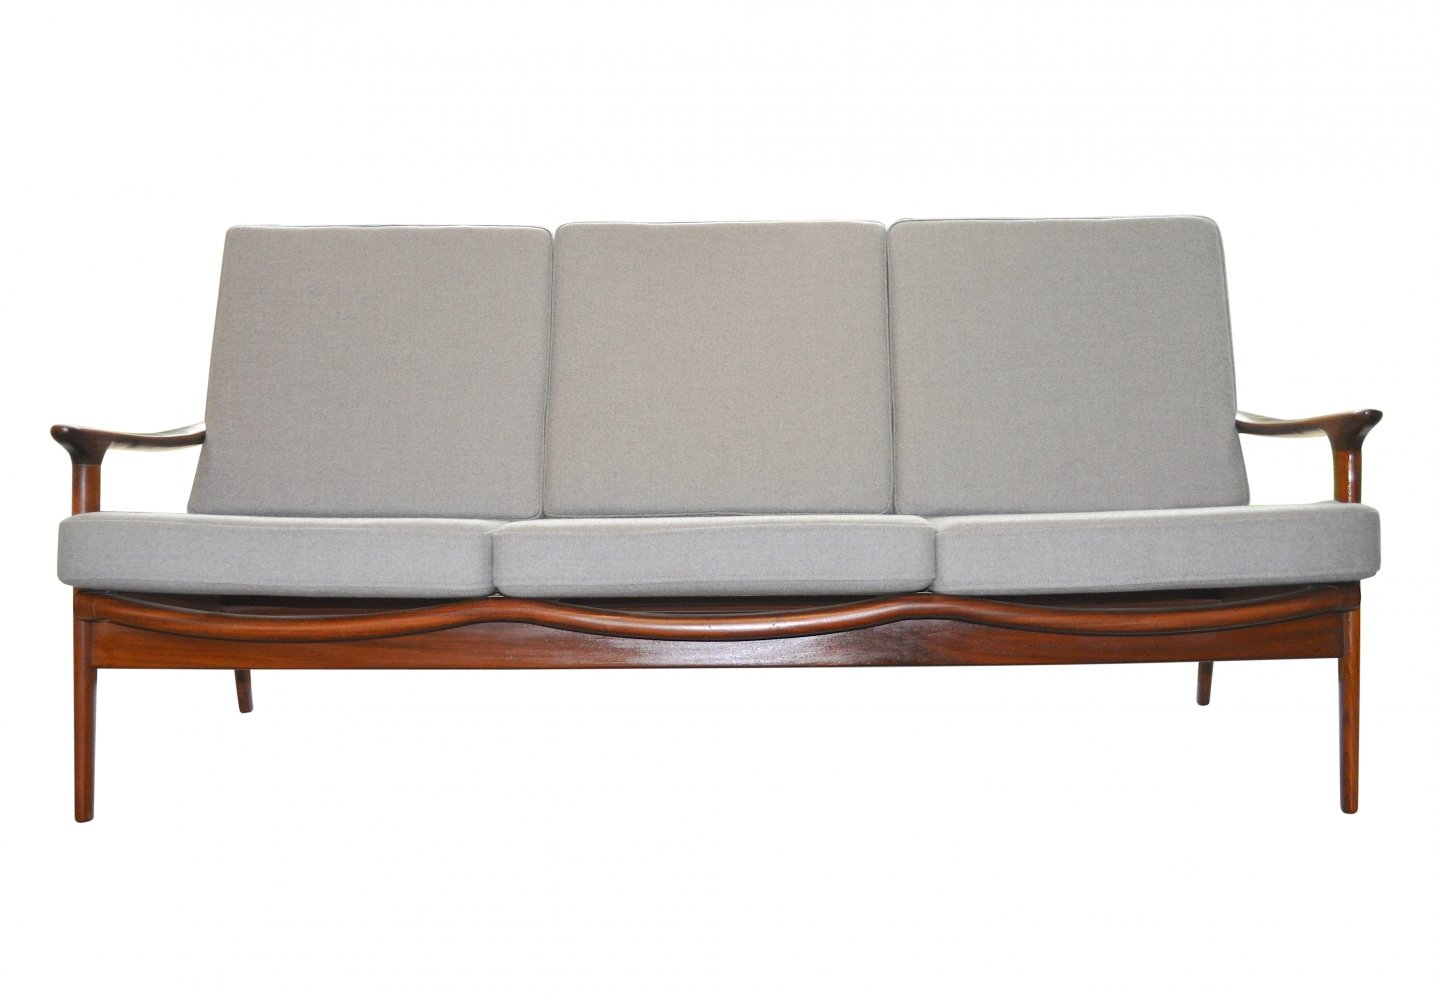 Guy Rogers New Yorker Sofa, 1960s